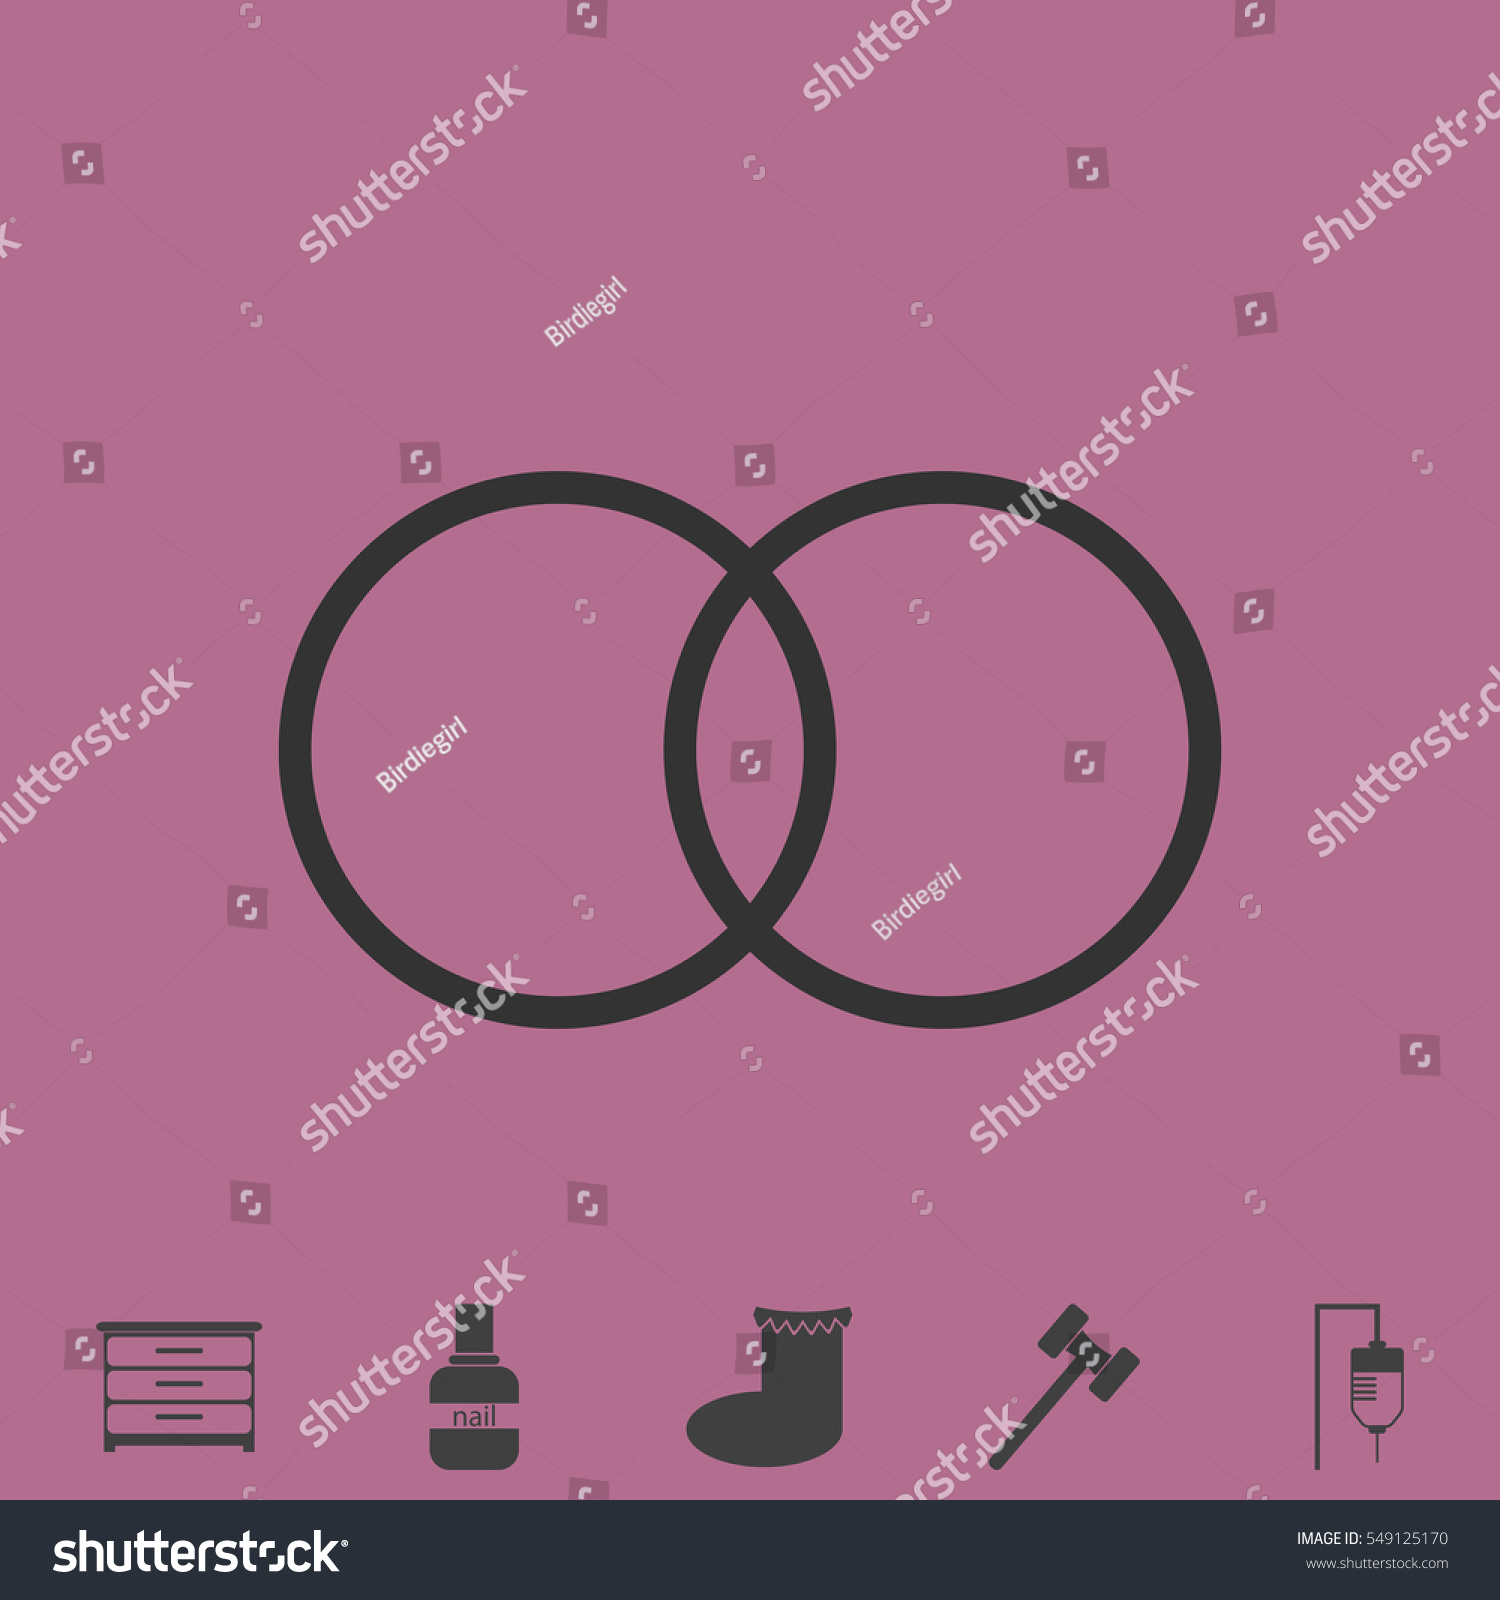 Wedding Rings Icon Flat Simple Vector Stock Vector 549125170 ...